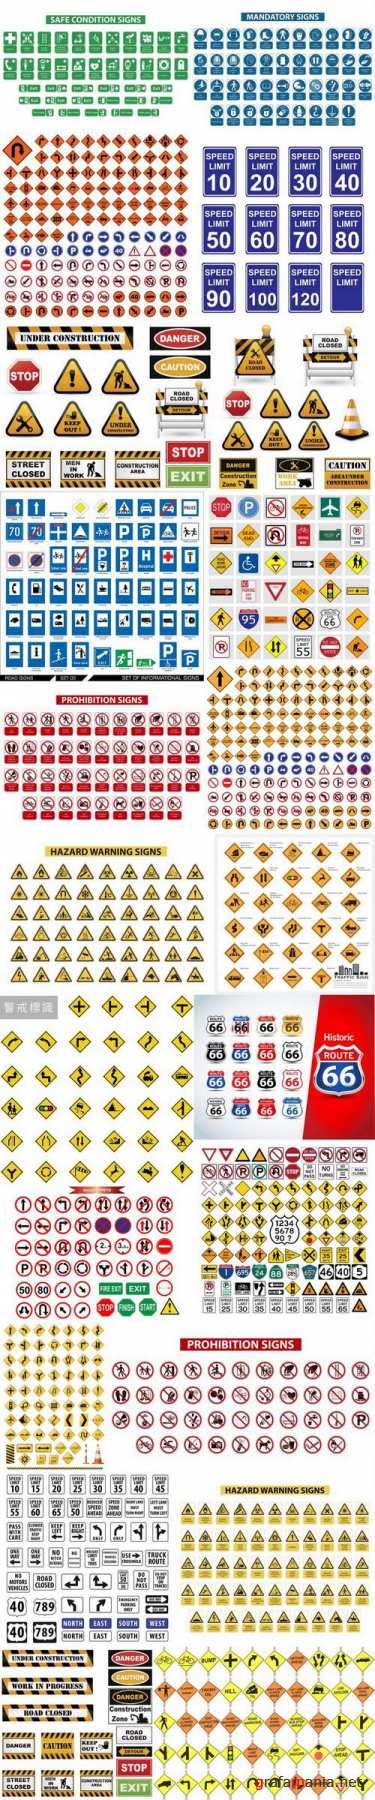 Road signs & under construction - 23xEPS